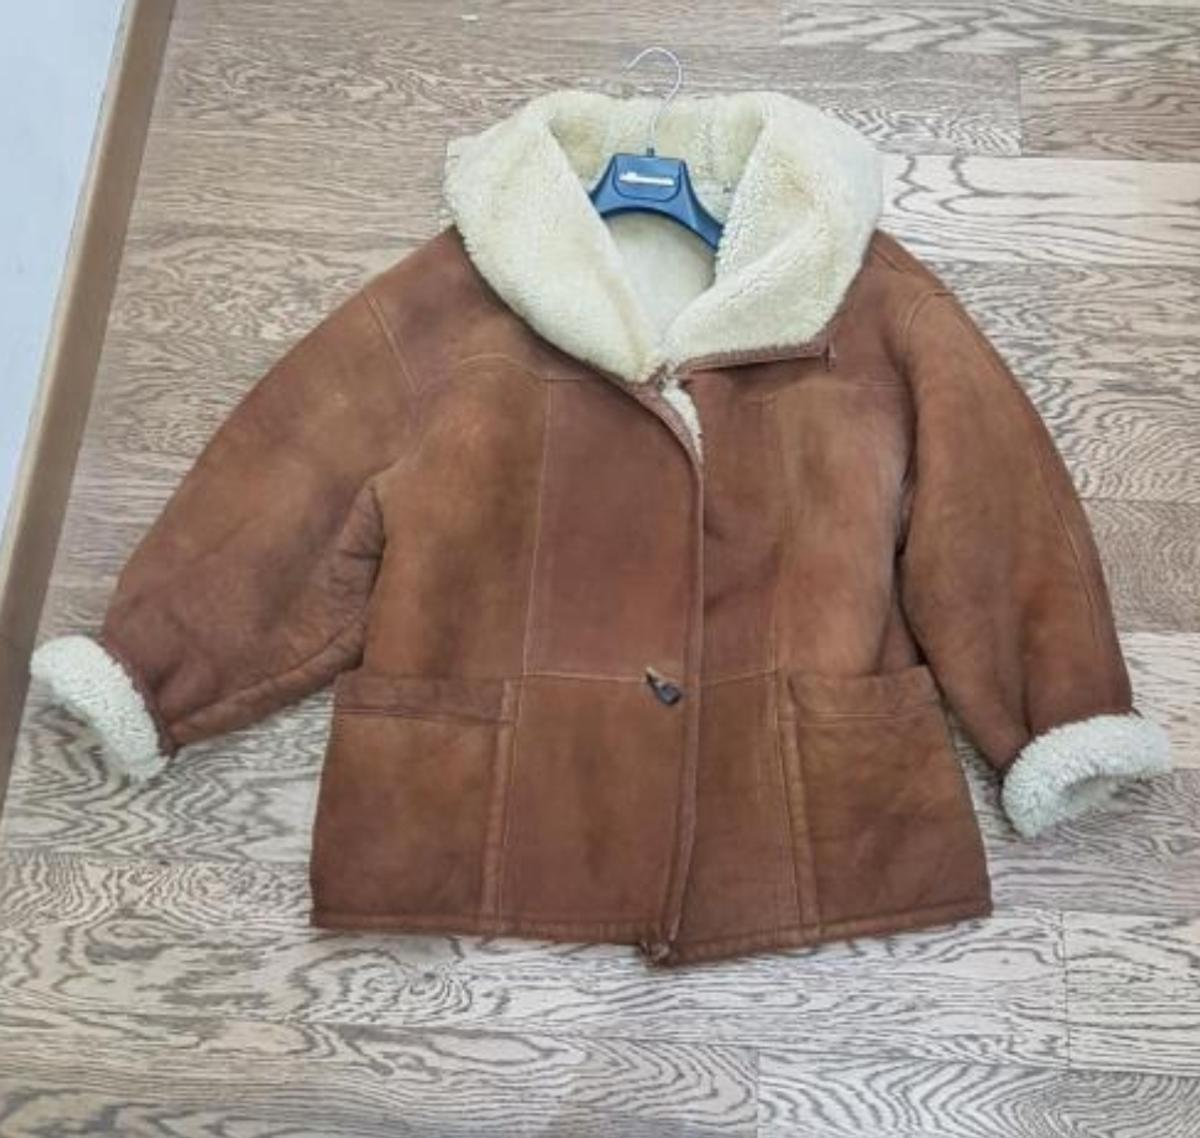 shearling montone vintage by Scout in 20134 Casanova for